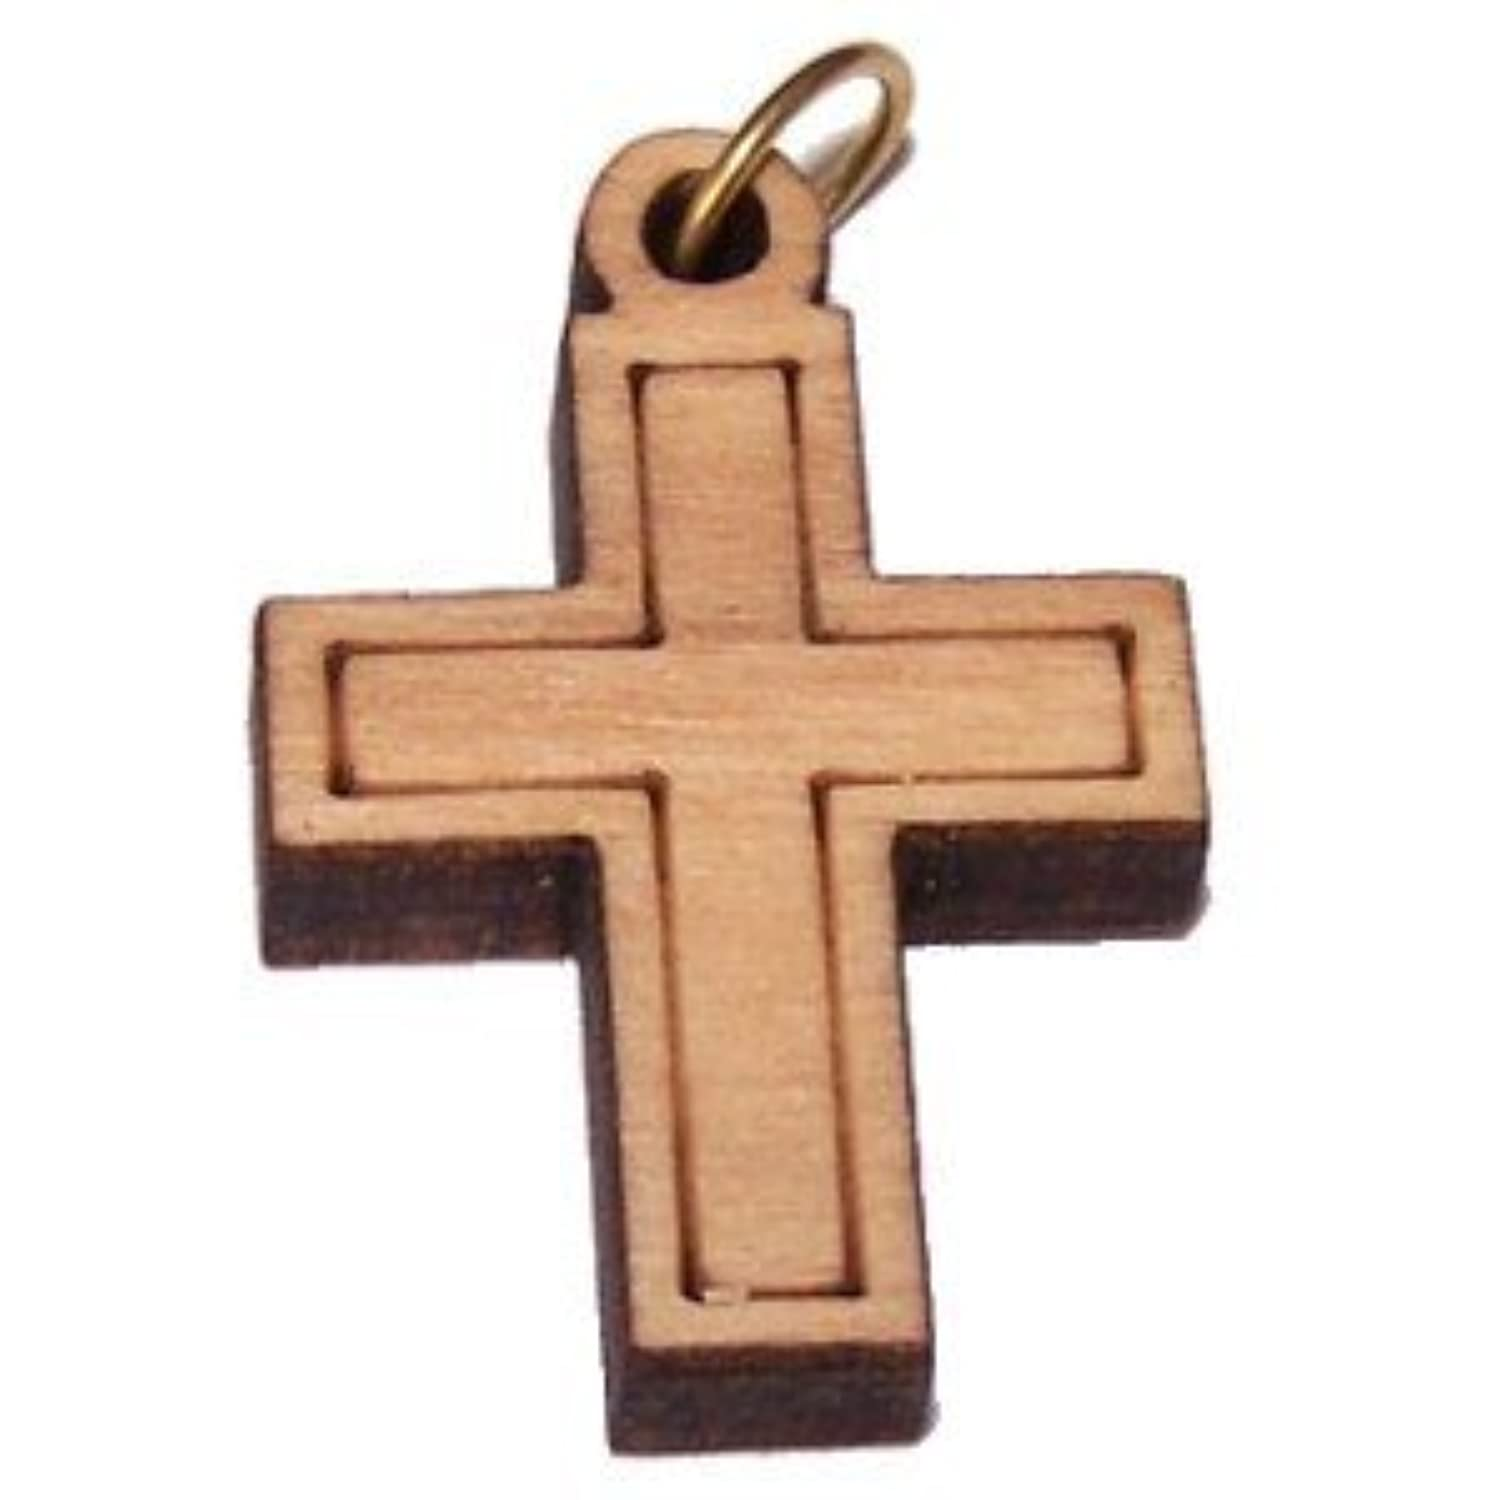 Olive wood Latin Cross Laser Pendant (8cm or 3.15